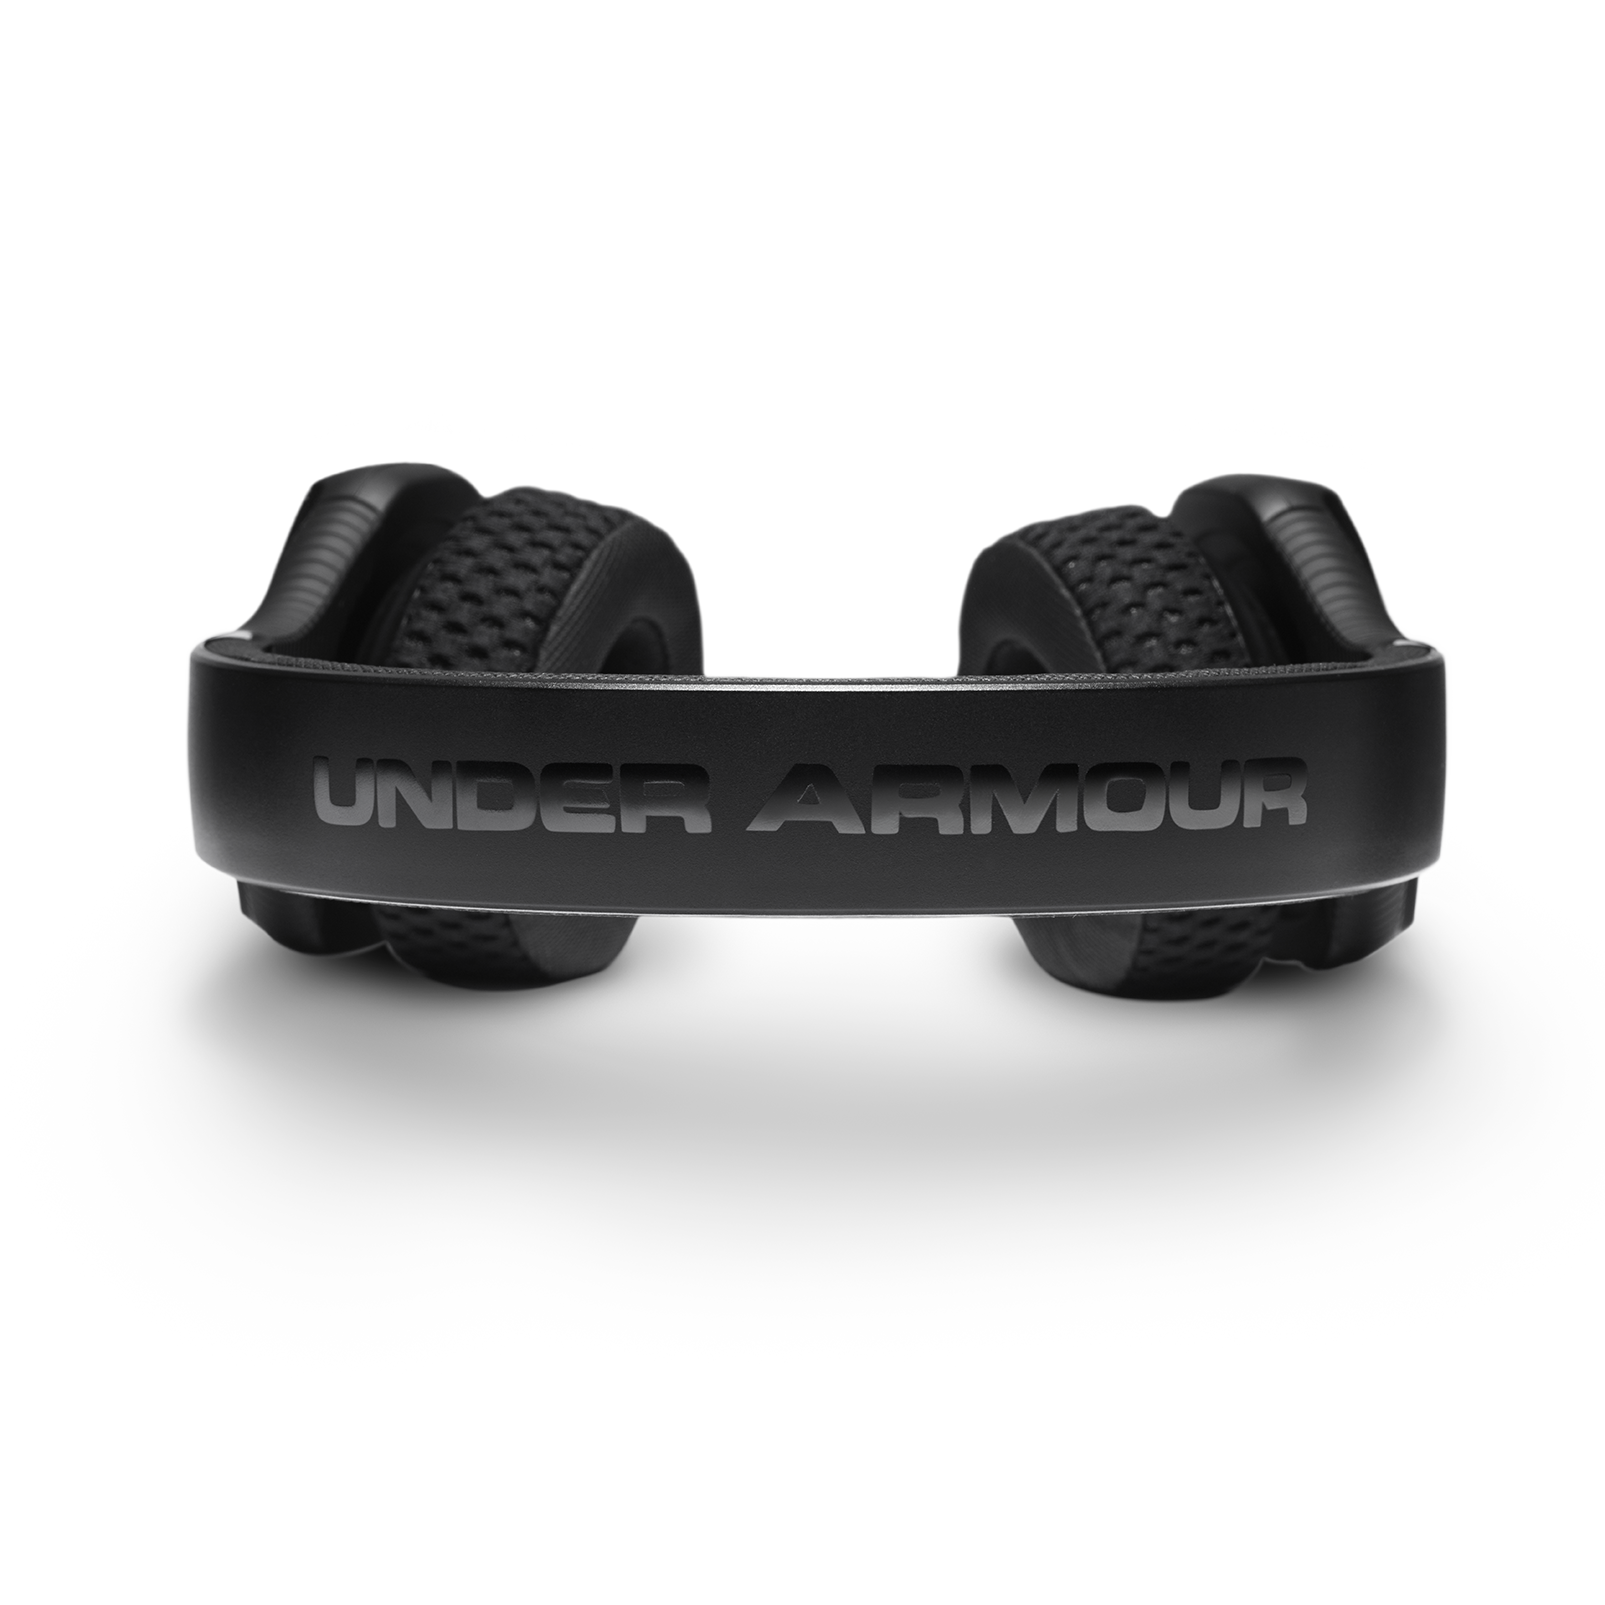 Ua Sport Wireless Train Engineered By Jbl Wireless On Ear